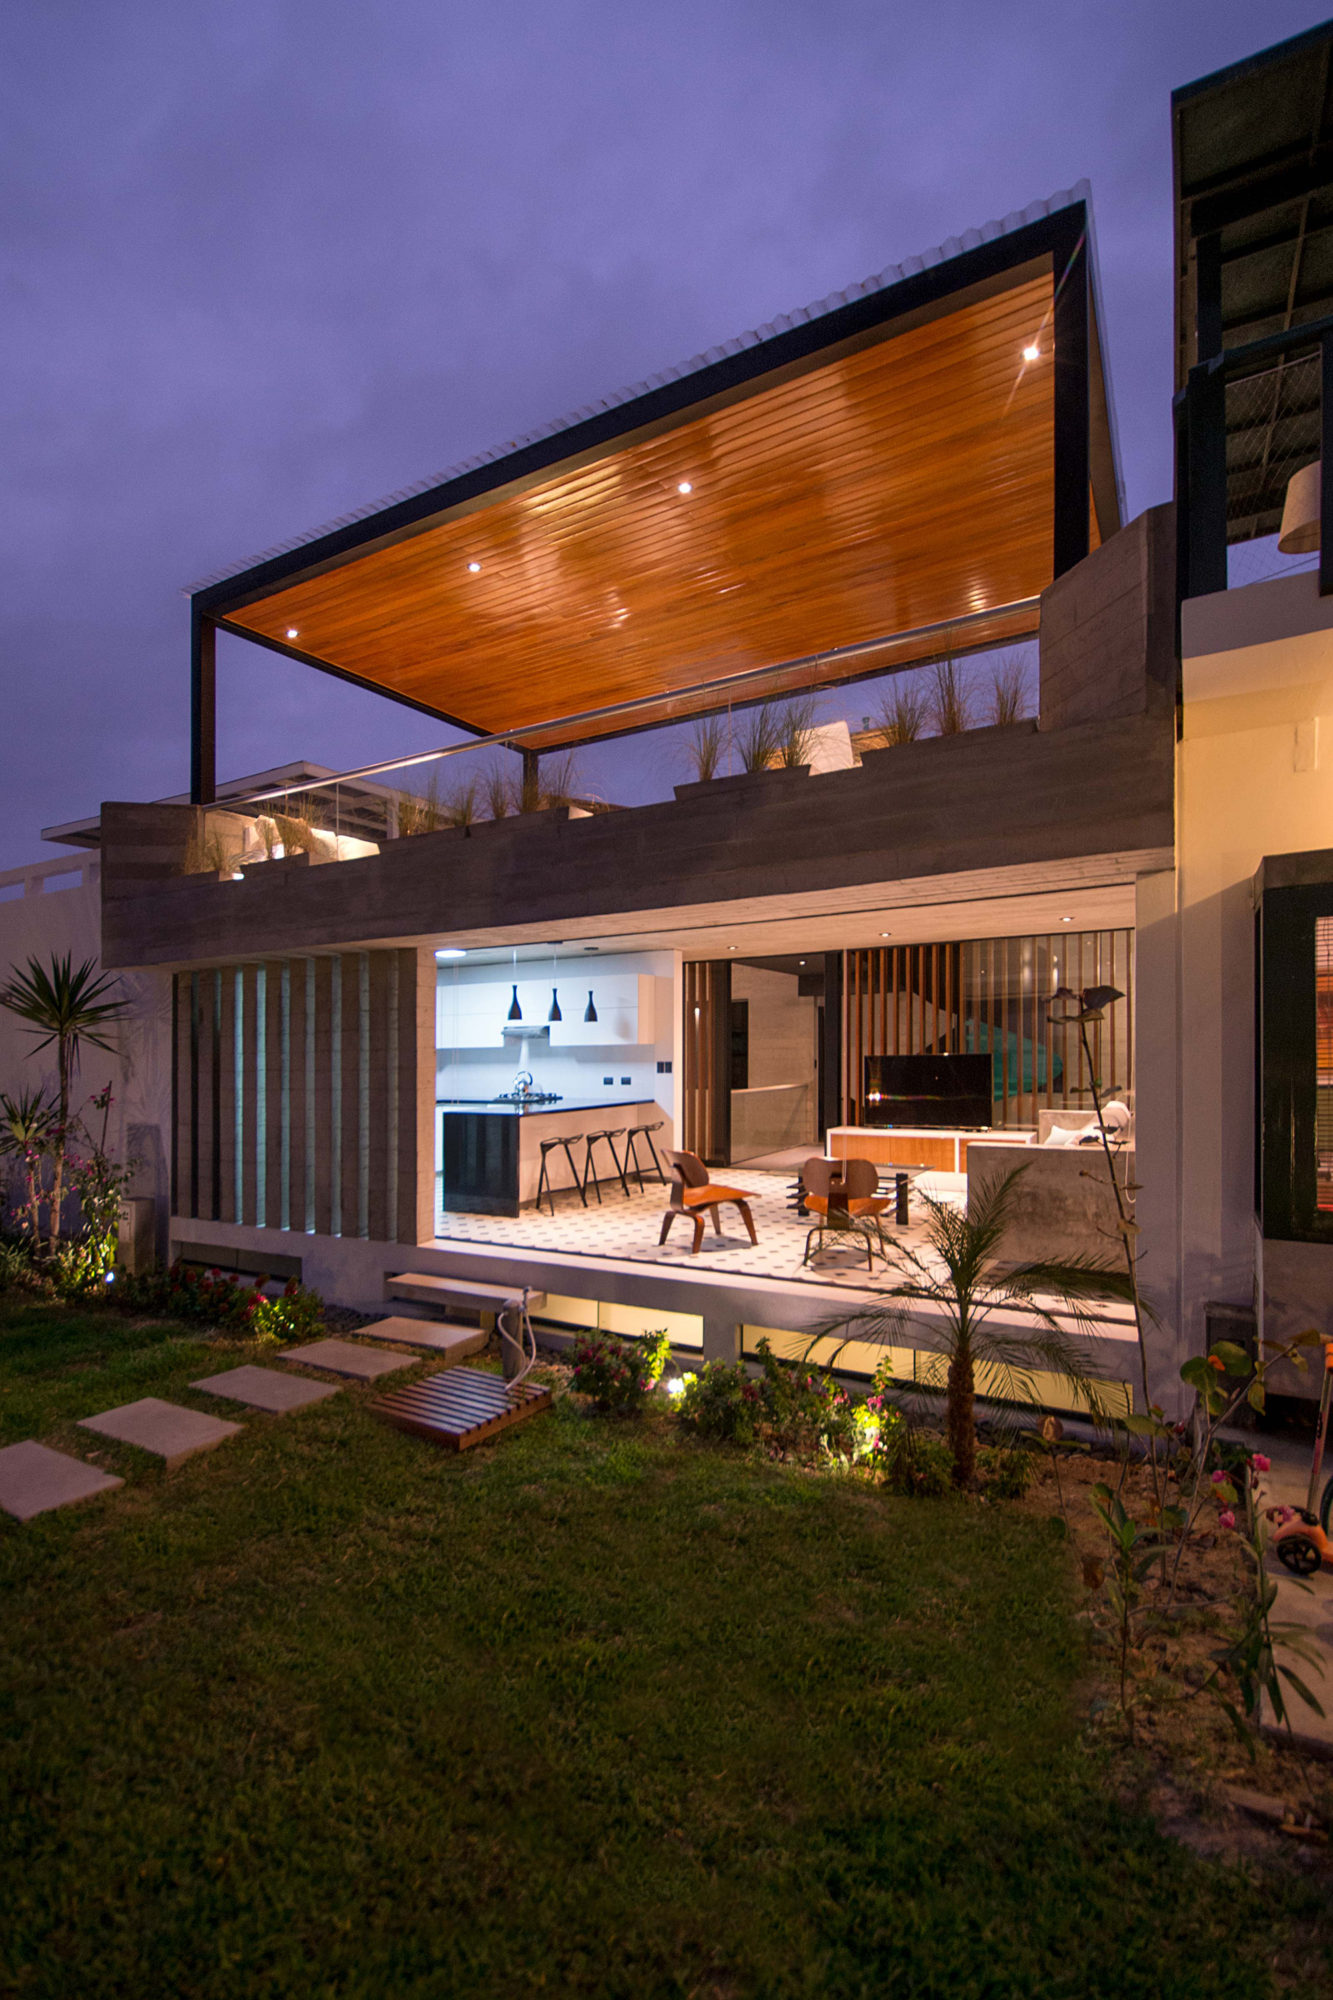 Contemporary s house in asia district peru for What is a shouse house